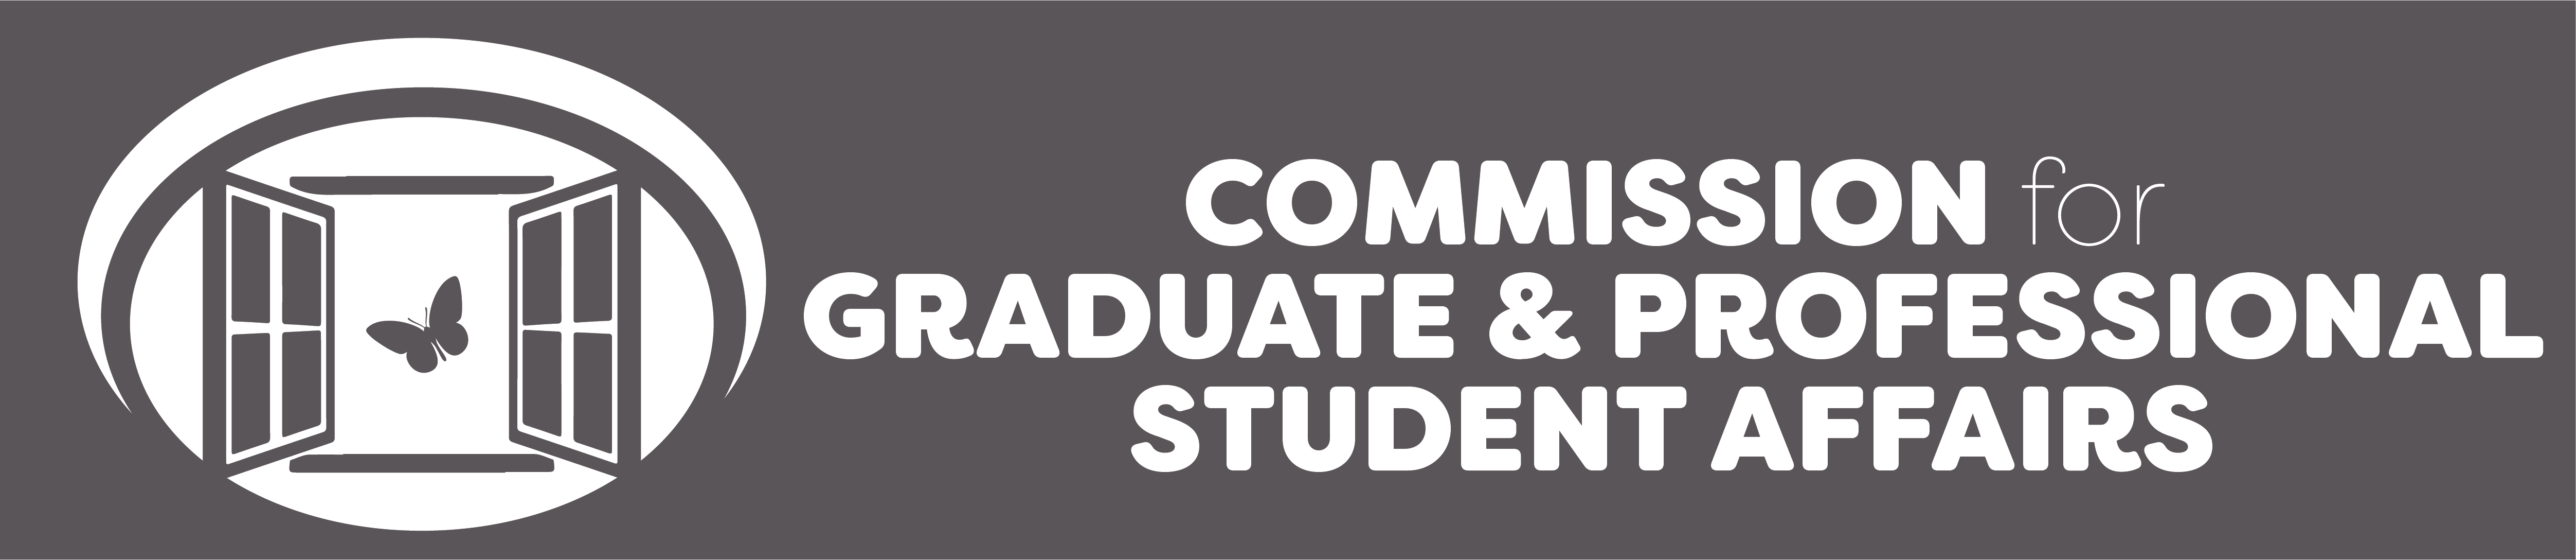 Commission for Graduate & Professional Student Affairs